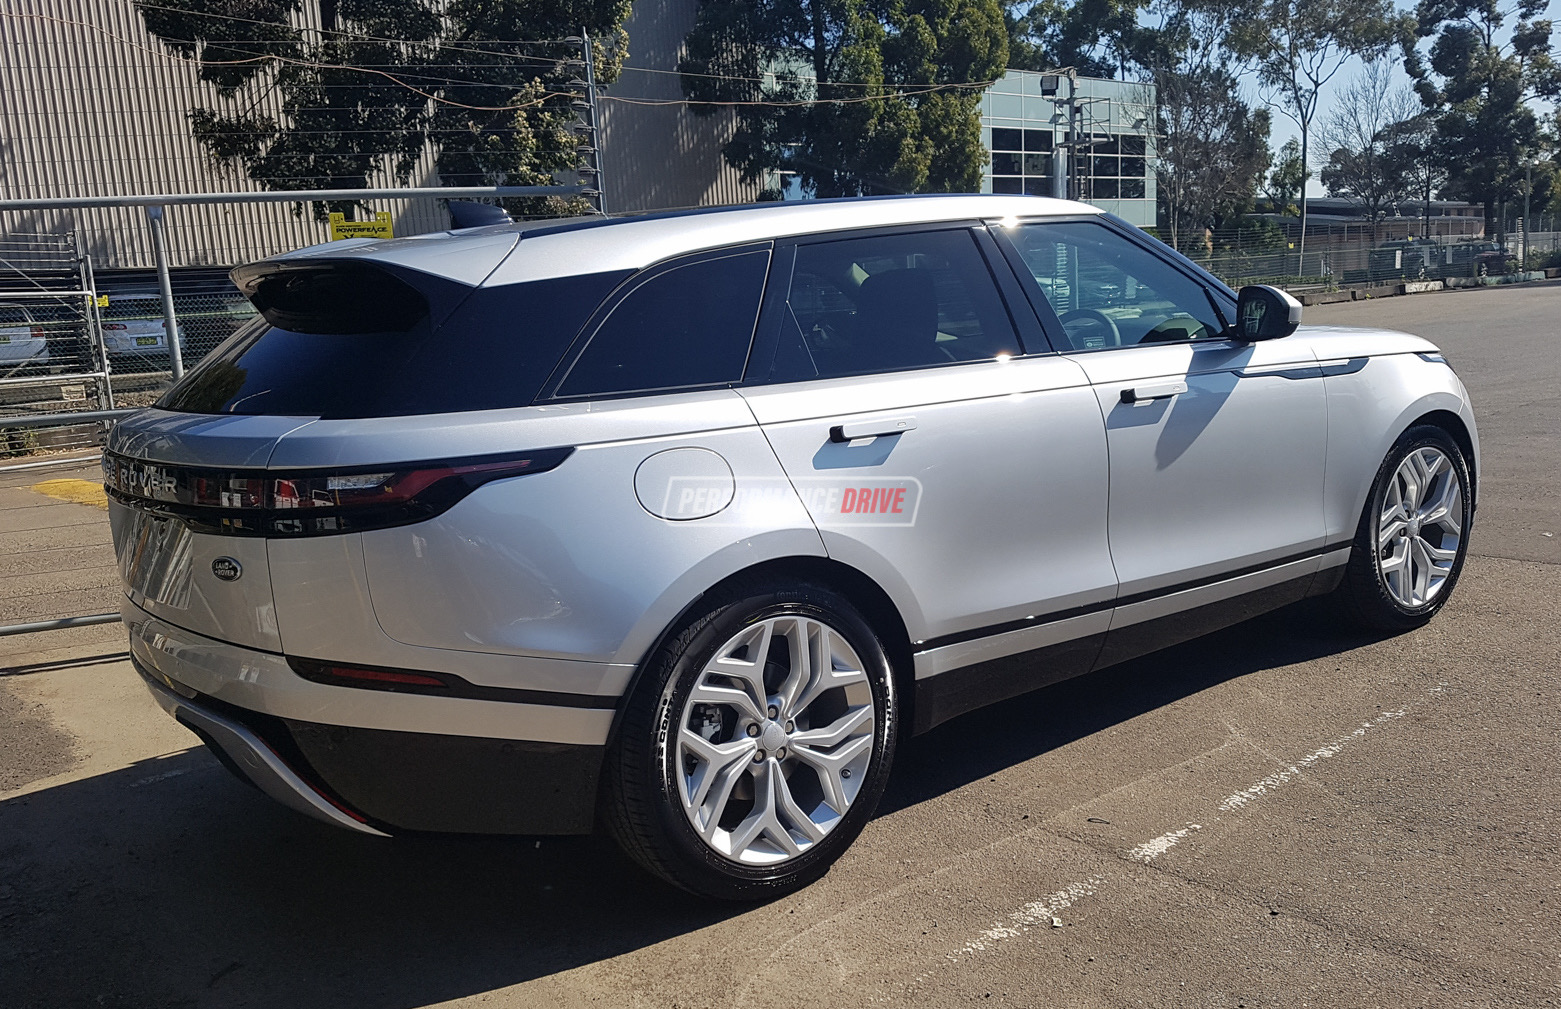 range rover velar spotted in australia again d240 d300 variants performancedrive. Black Bedroom Furniture Sets. Home Design Ideas